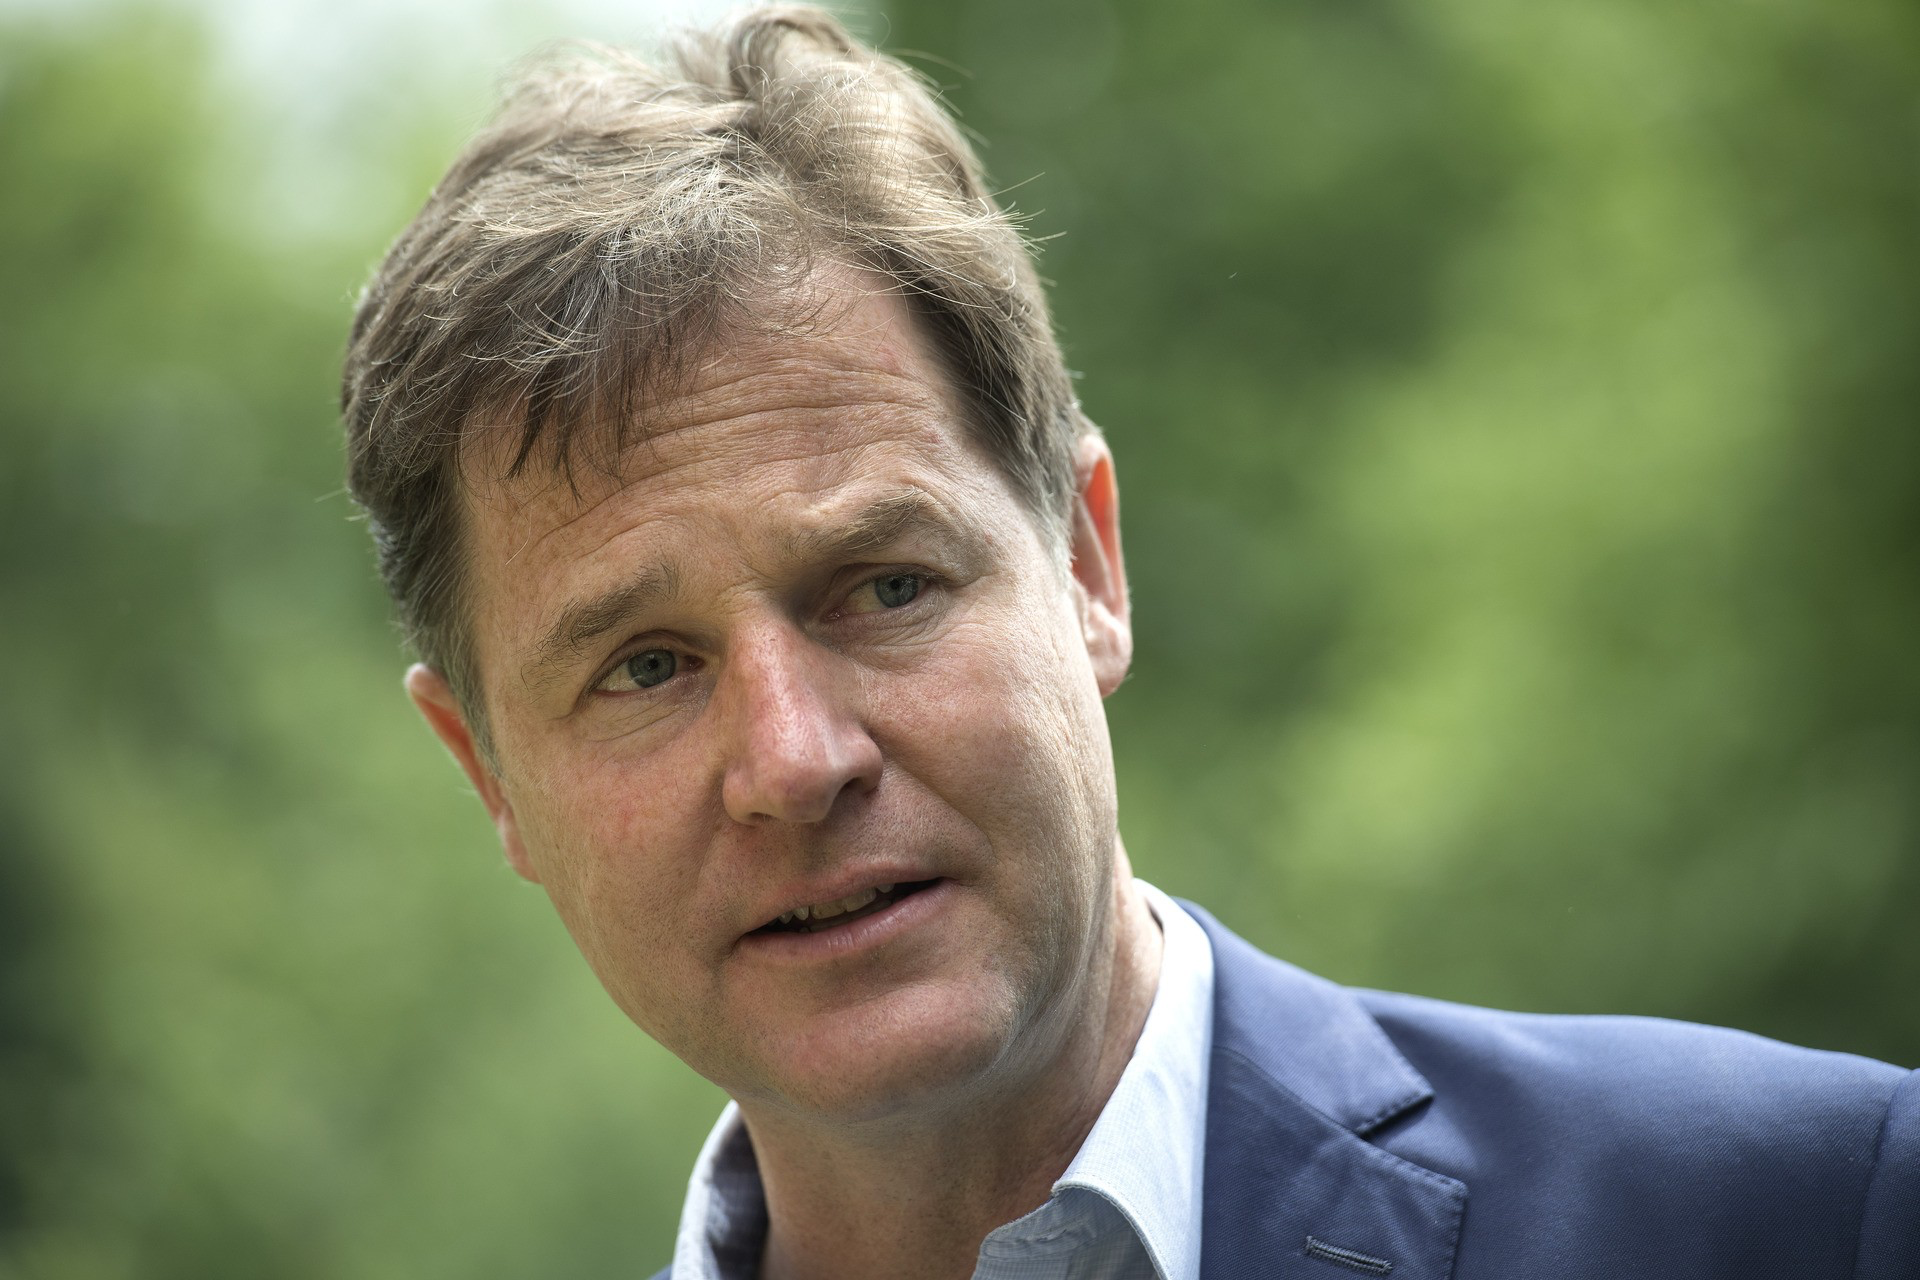 Nick Clegg Facebook